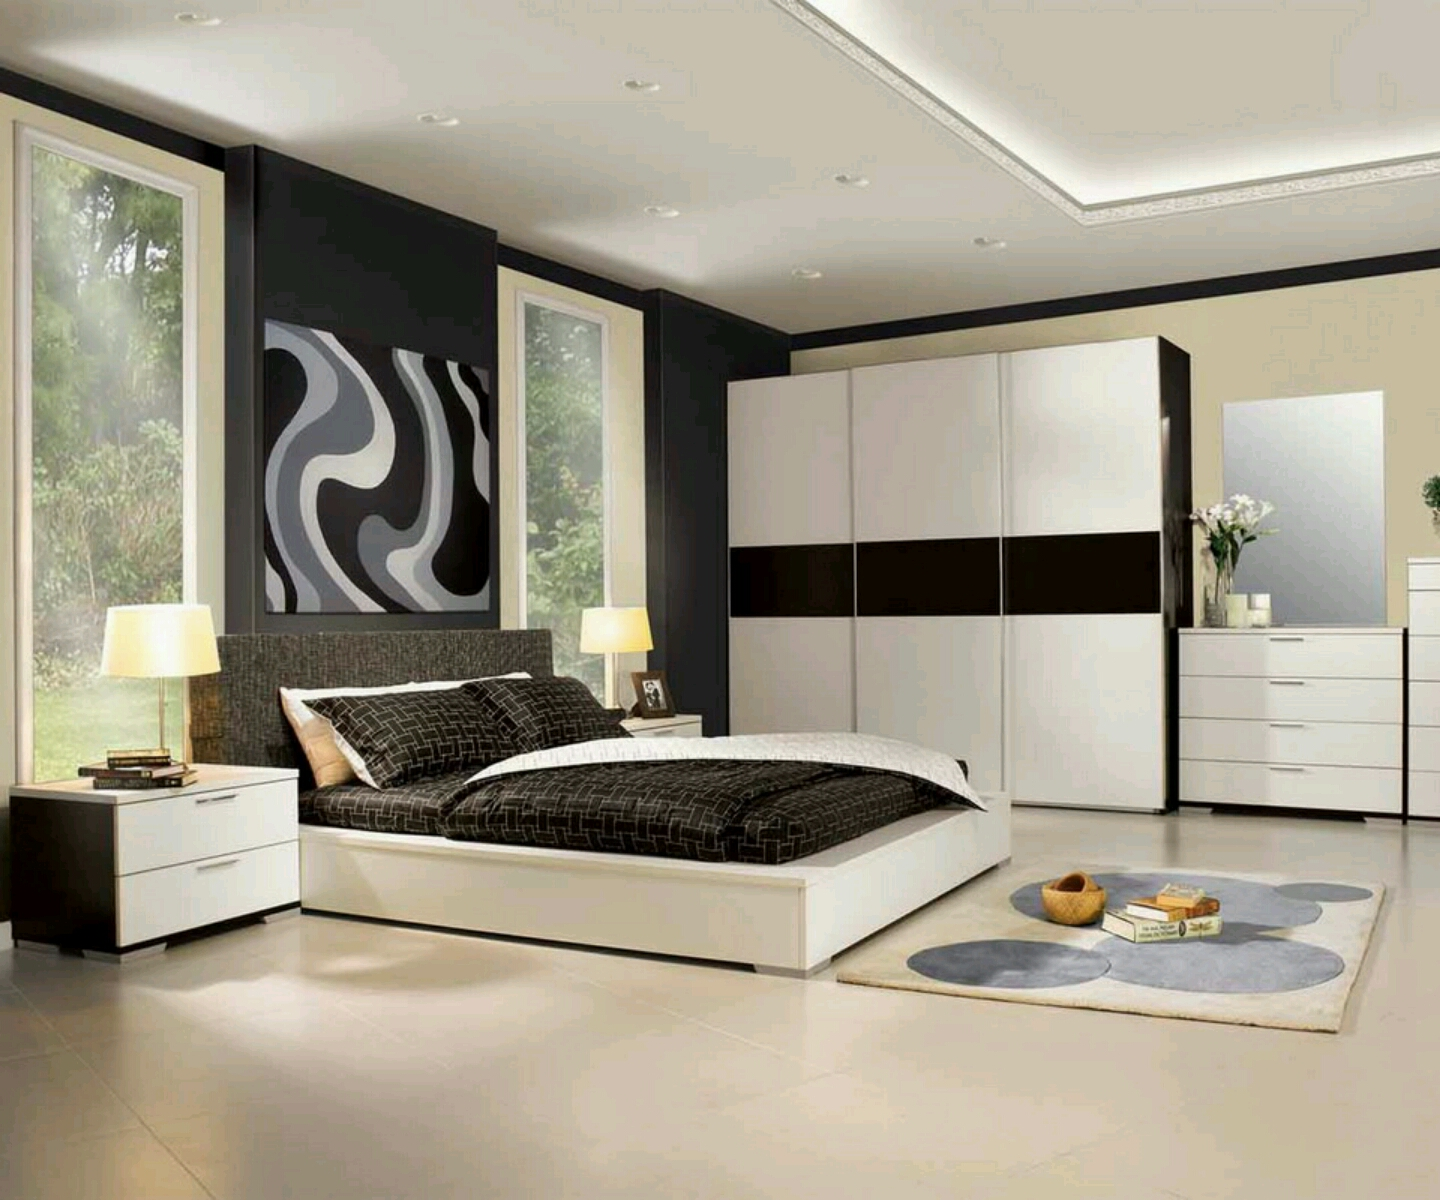 Bedroom Furniture Design Luxury Bedroom Furniture Luxury Bedroom